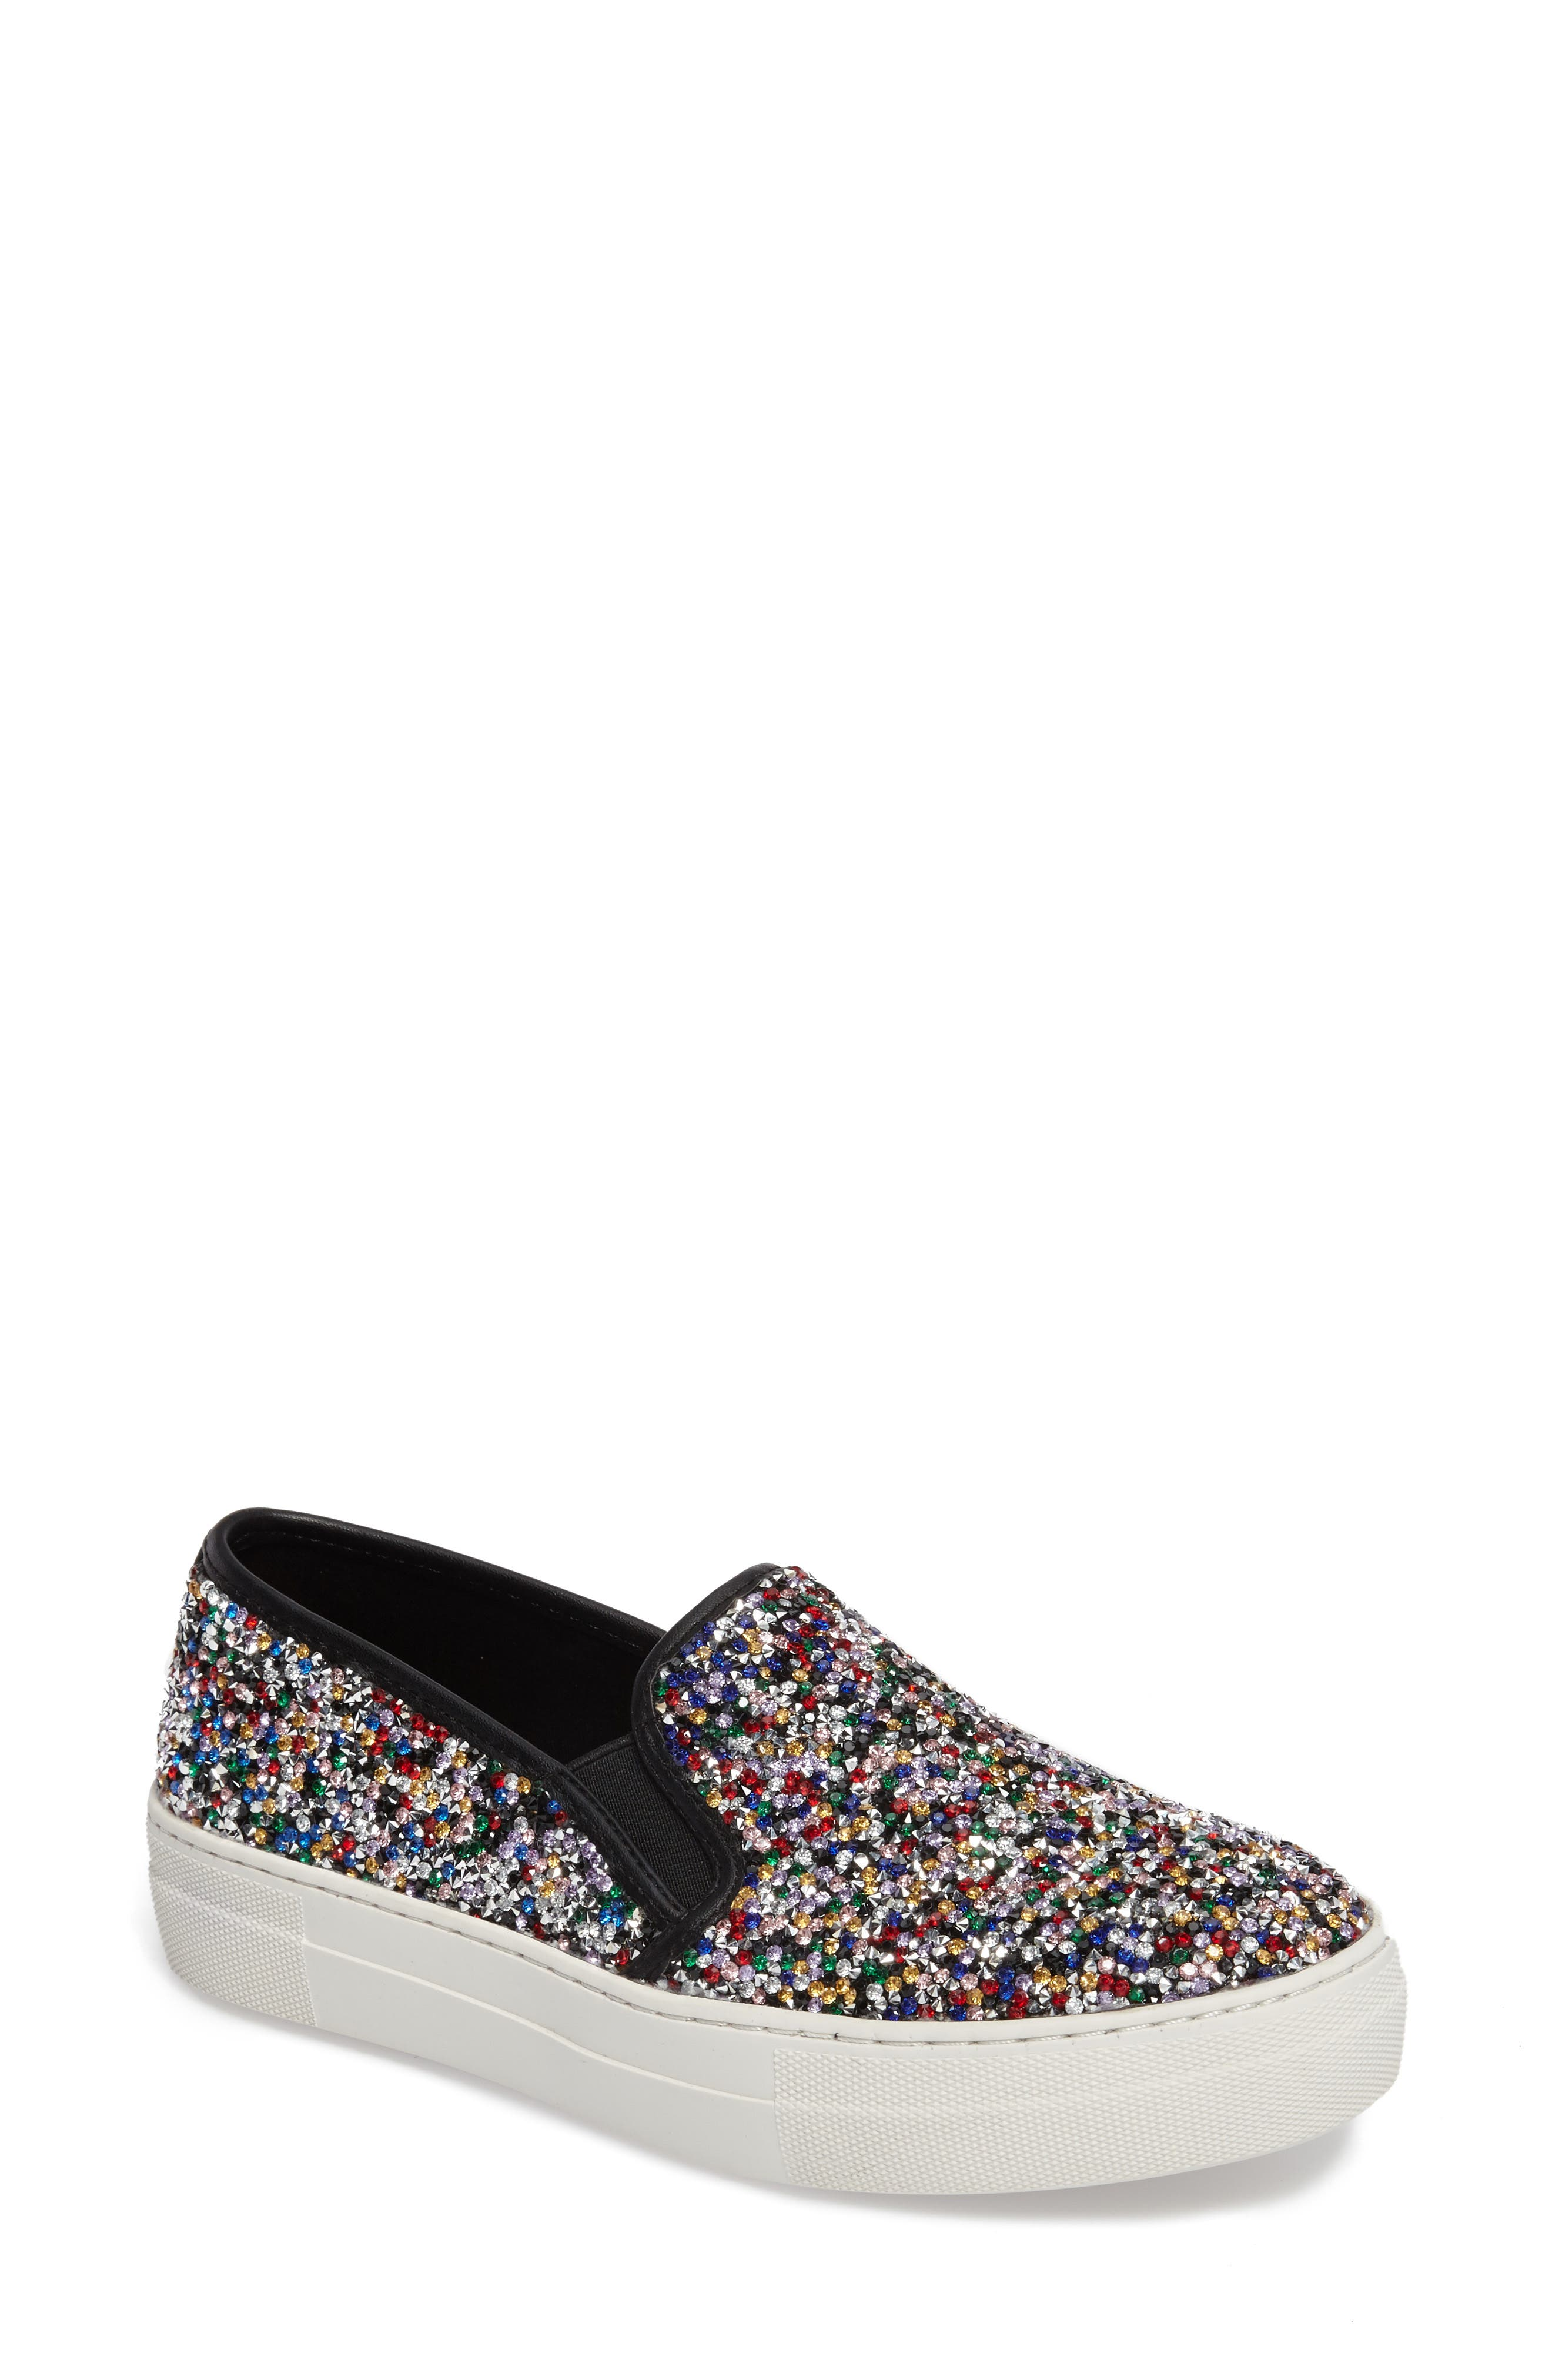 Alternate Image 1 Selected - Steve Madden Gracious Slip-On Sneaker (Women)